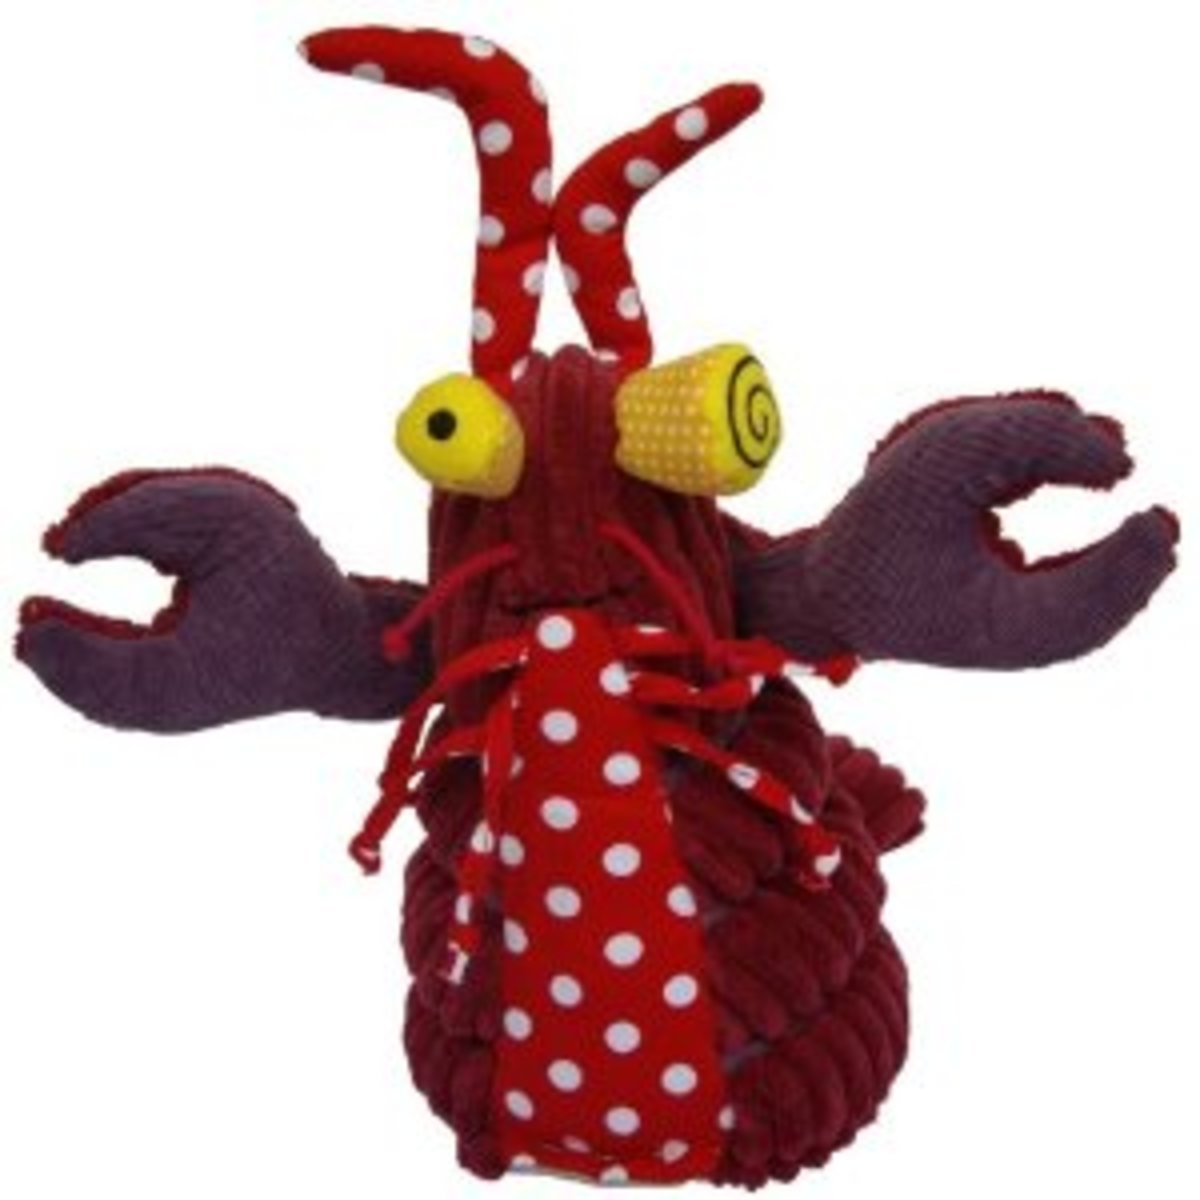 Molos the Lobster